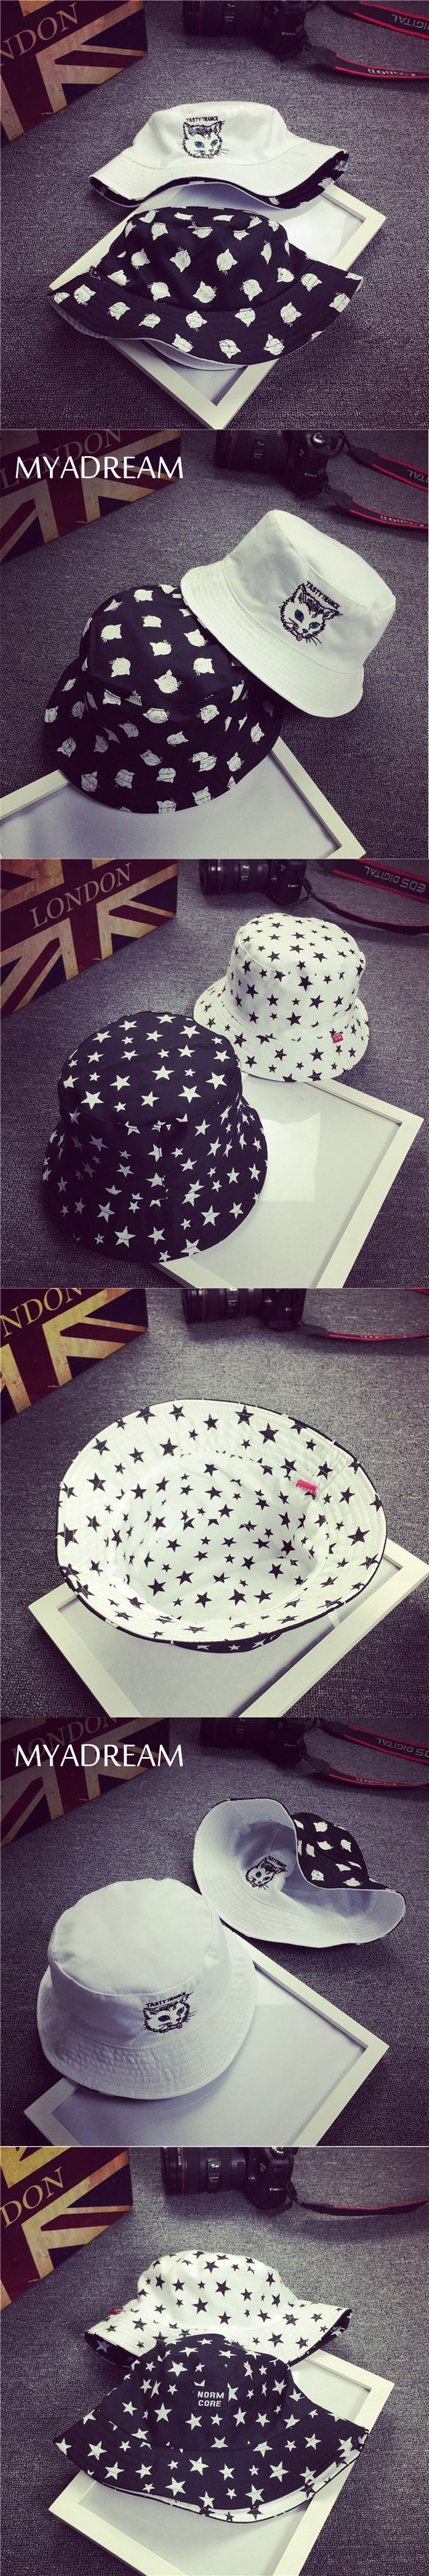 MYADREAM Double-sided Wear Cat Star Print Bucket Hat Men Women Fishing Hat Casual Embroidery Flat Top Boonie Hat Bape Cap Boina